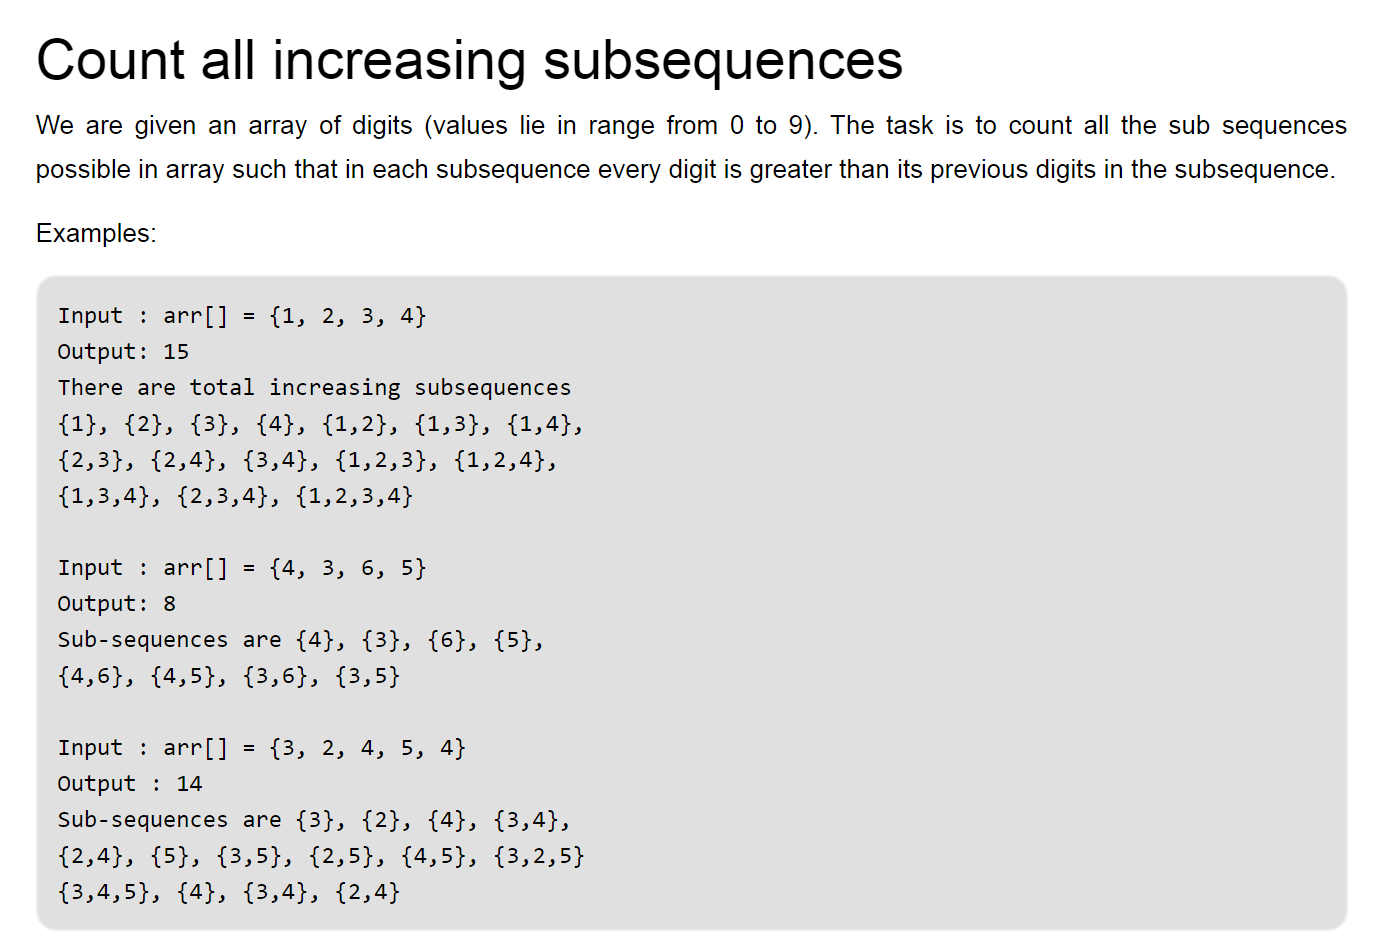 dynamic programming example for counting all increasing sequences